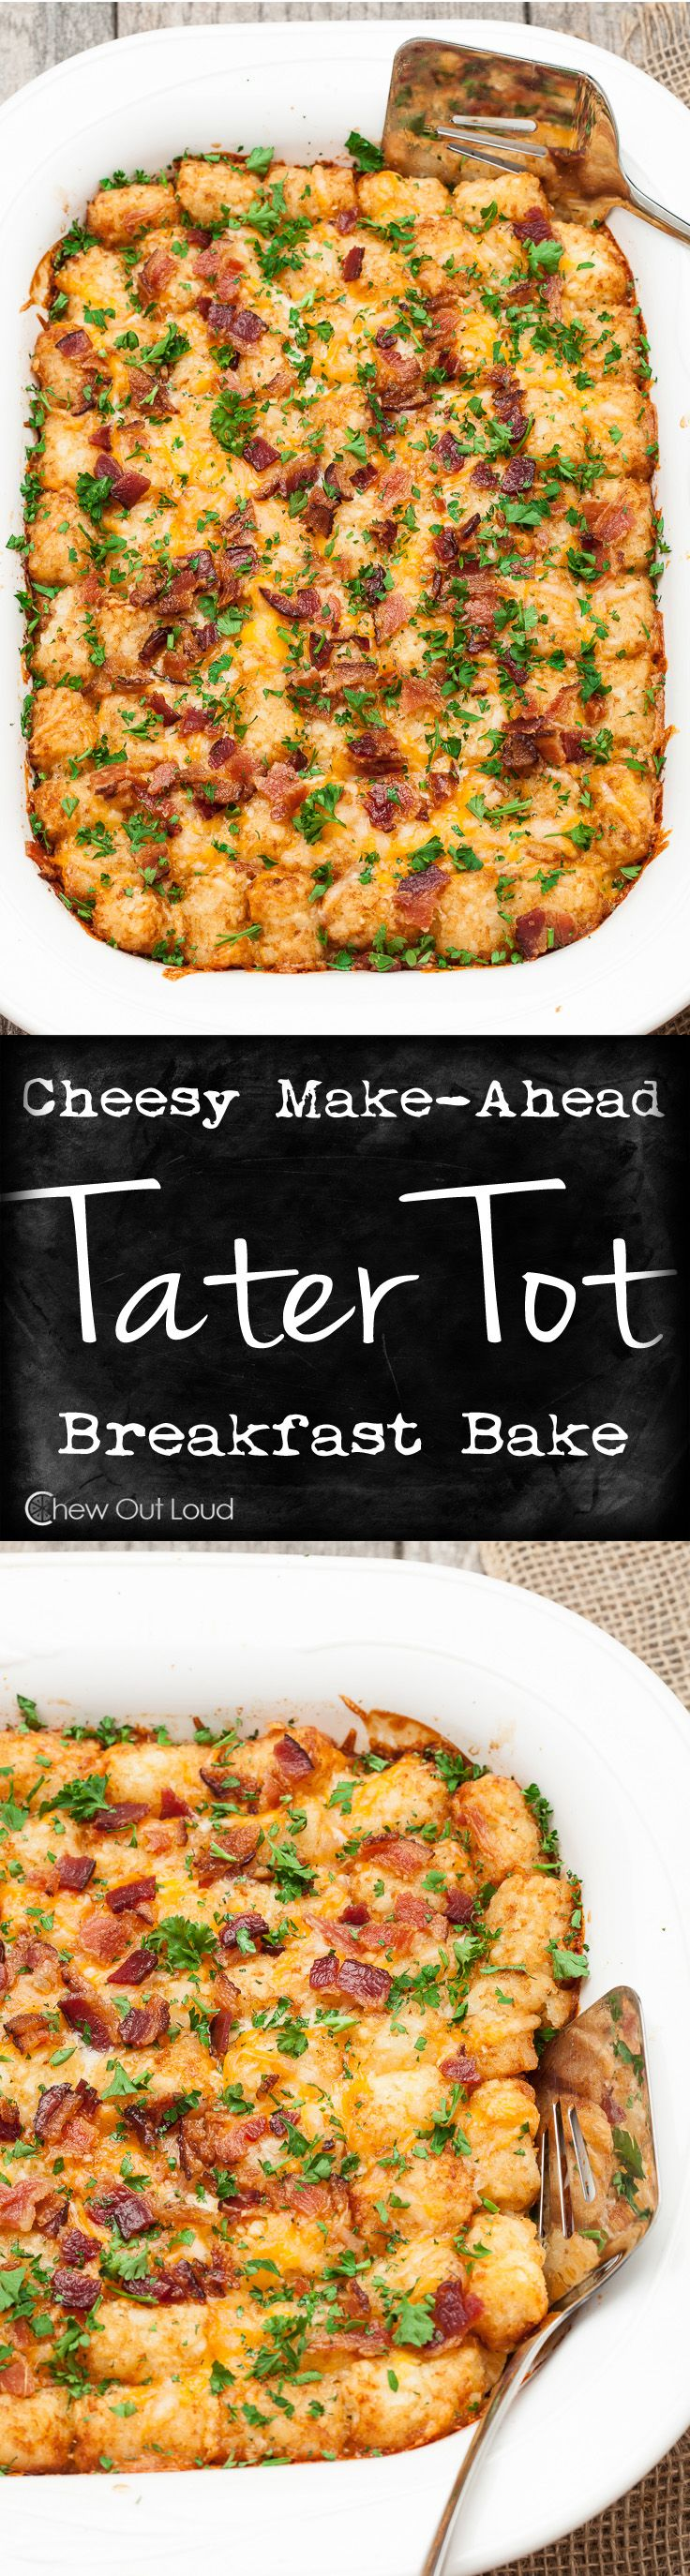 Cheesy Tater Tot Breakfast Bake - Just a handful of ingredients, make-ahead the night before, and delicious the next morning! Total crowd pleaser! #recipe #brunch #casserole: Cheesy Tater Tot Breakfast Bake - Just a handful of ingredients, make-ahead the night before, and delicious the next morning! Total crowd pleaser! #recipe #brunch #casserole